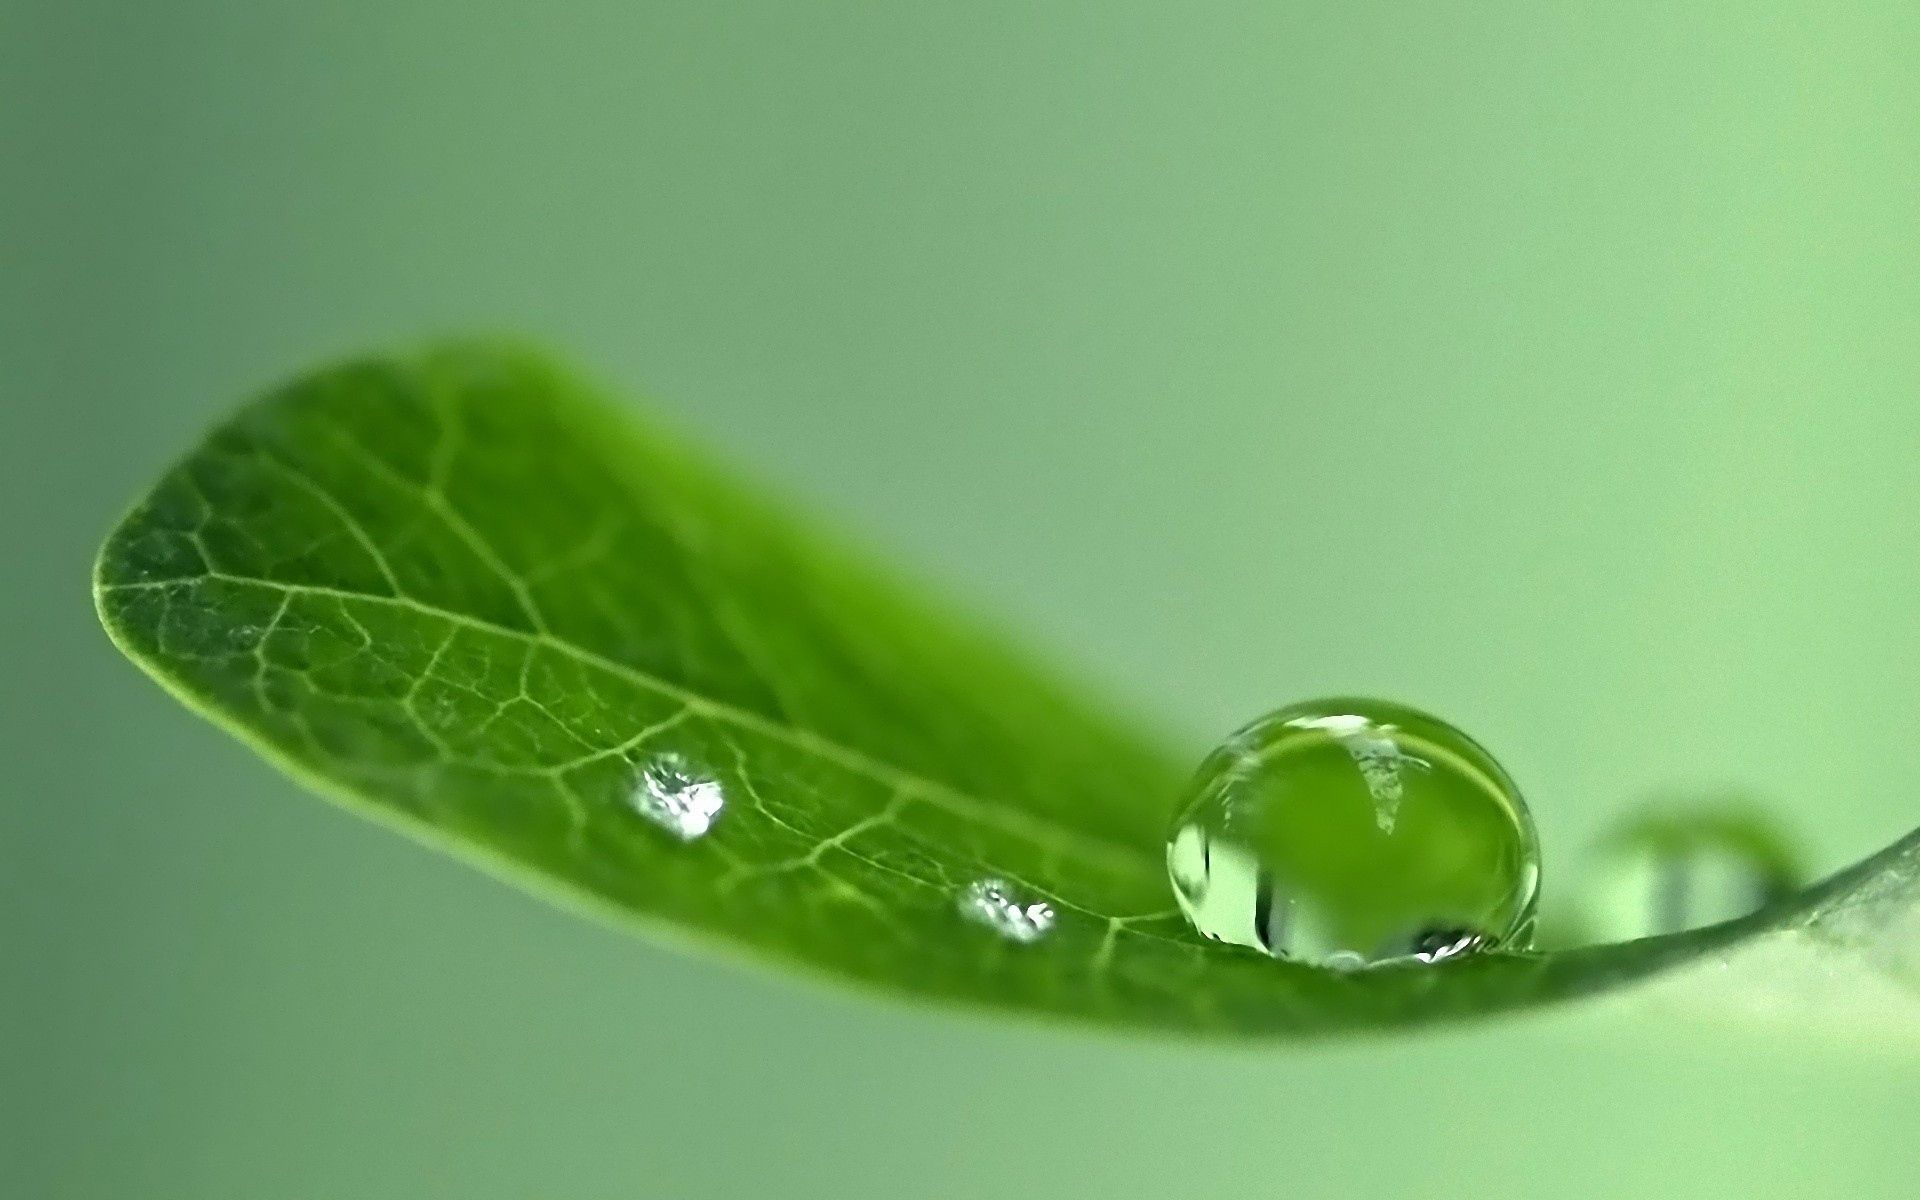 63367 download wallpaper Macro, Sheet, Leaf, Drops, Surface, Shine, Light screensavers and pictures for free